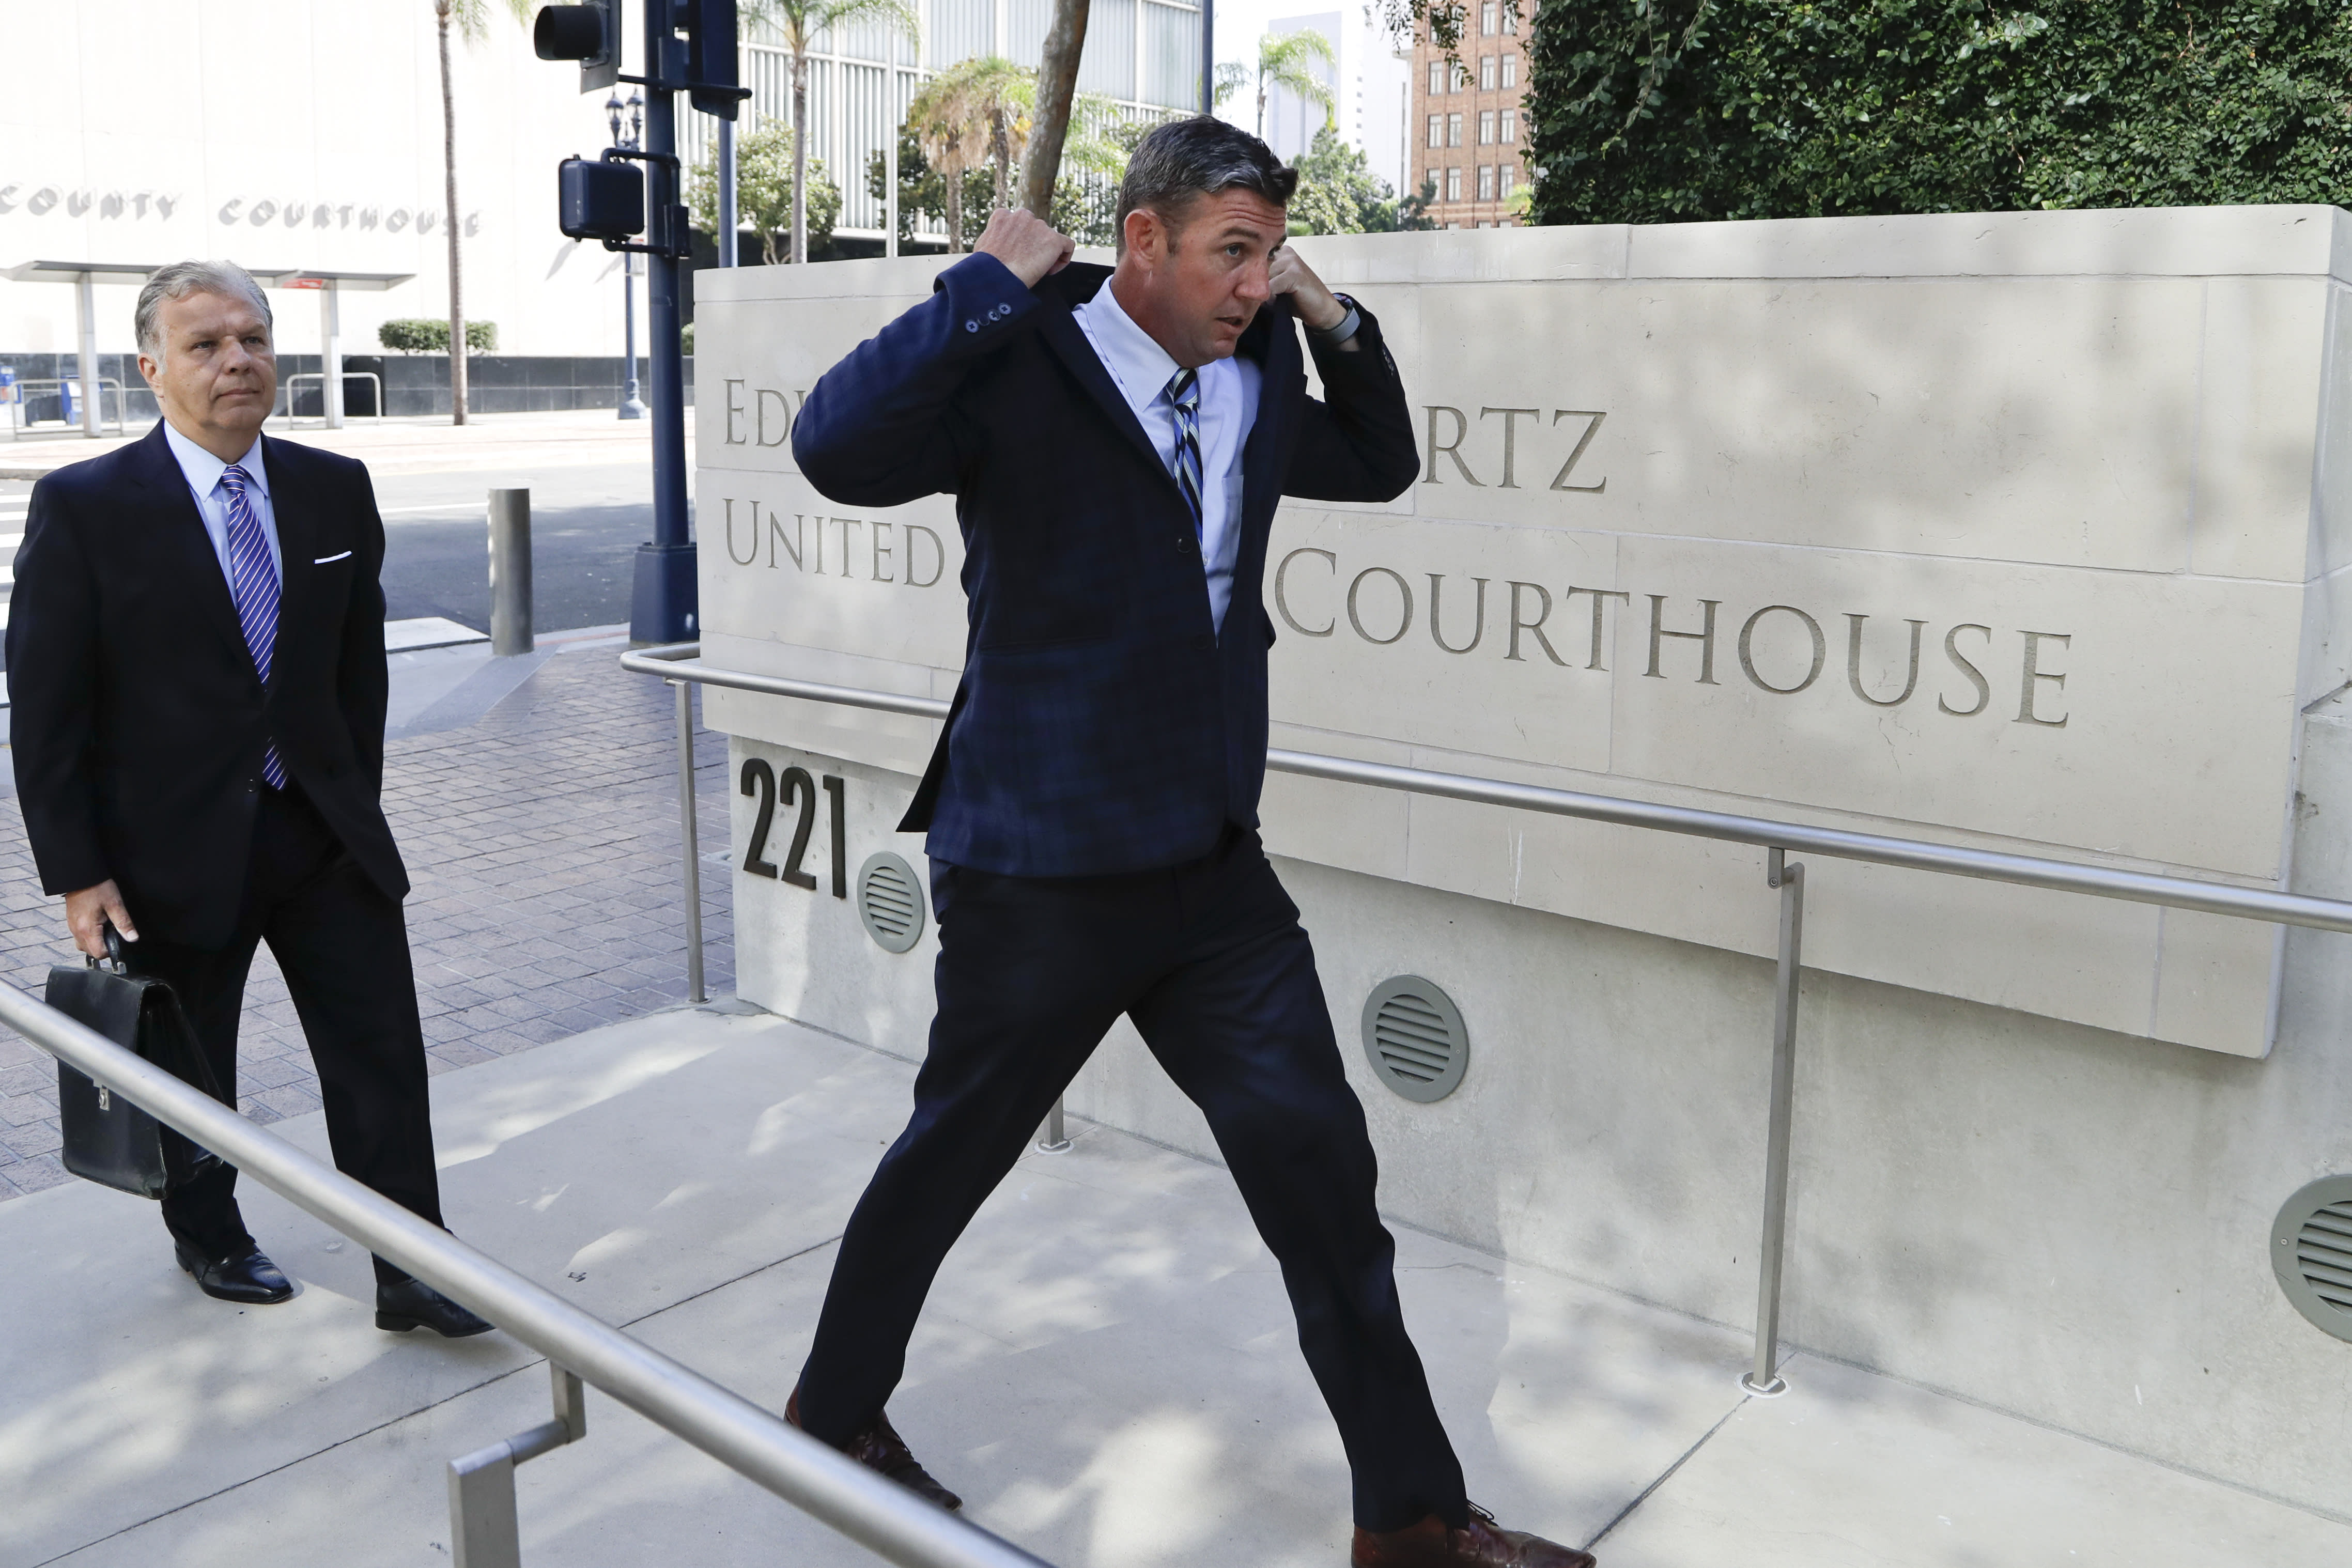 U.S. Rep. Duncan Hunter, right, arrives for an arraignment hearing Thursday, Aug. 23, 2018, in San Diego. Hunter and his wife were indicted Tuesday on federal charges that they used more than $250,000 in campaign funds for personal expenses that ranged from groceries to golf trips and lied about it in federal filings, prosecutors said. (AP Photo/Gregory Bull)